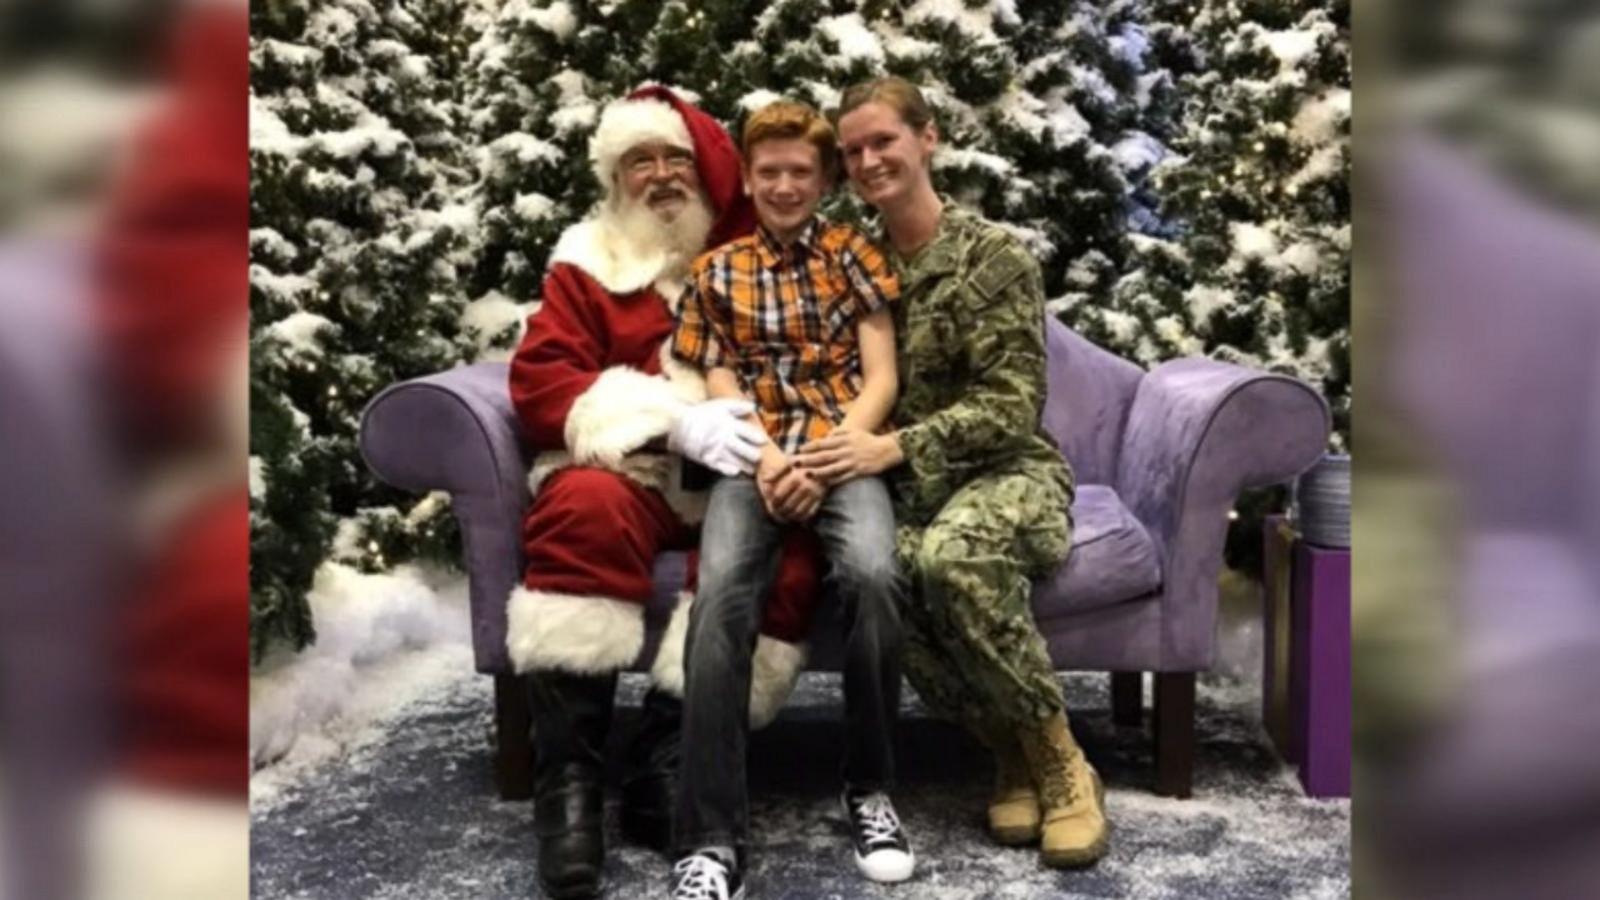 Petty Officer Julie Workman surprised her son Dylan home from deployment at SouthPark Mall in Strongsville, Ohio.